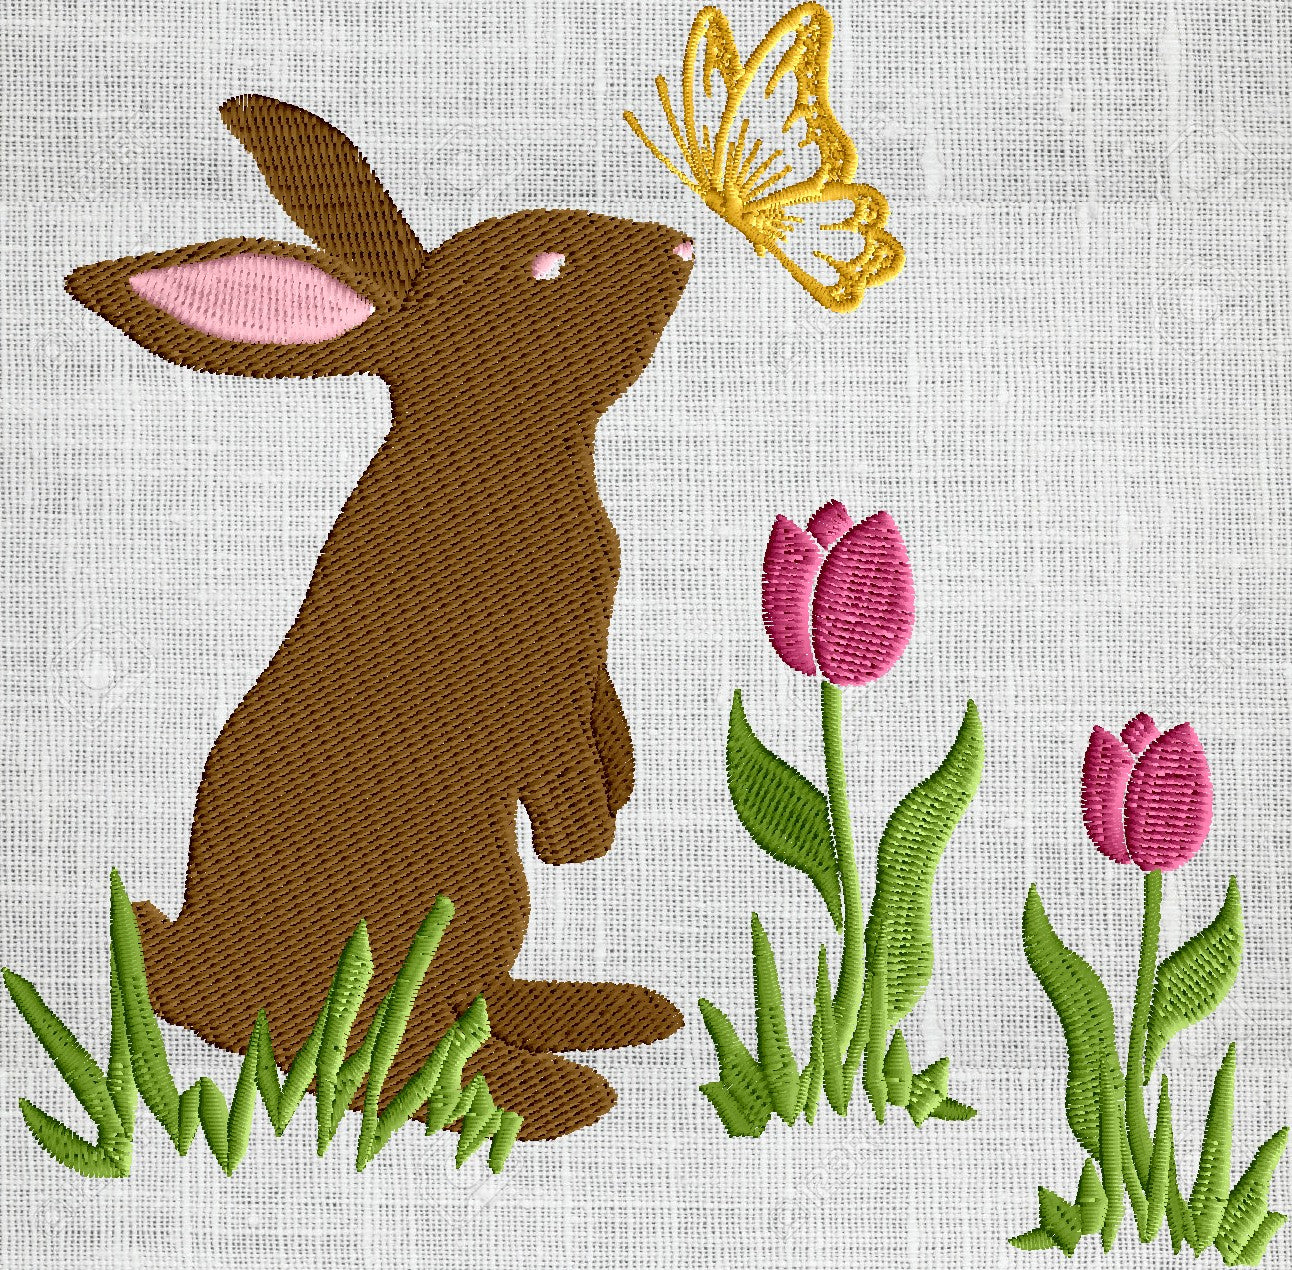 Bunny with Butterfly in tulips - Easter - Embroidery DESIGN FILE Instant download - 2 sizes 5 colors Hus Dst Jef Pes Exp Vp3 formats